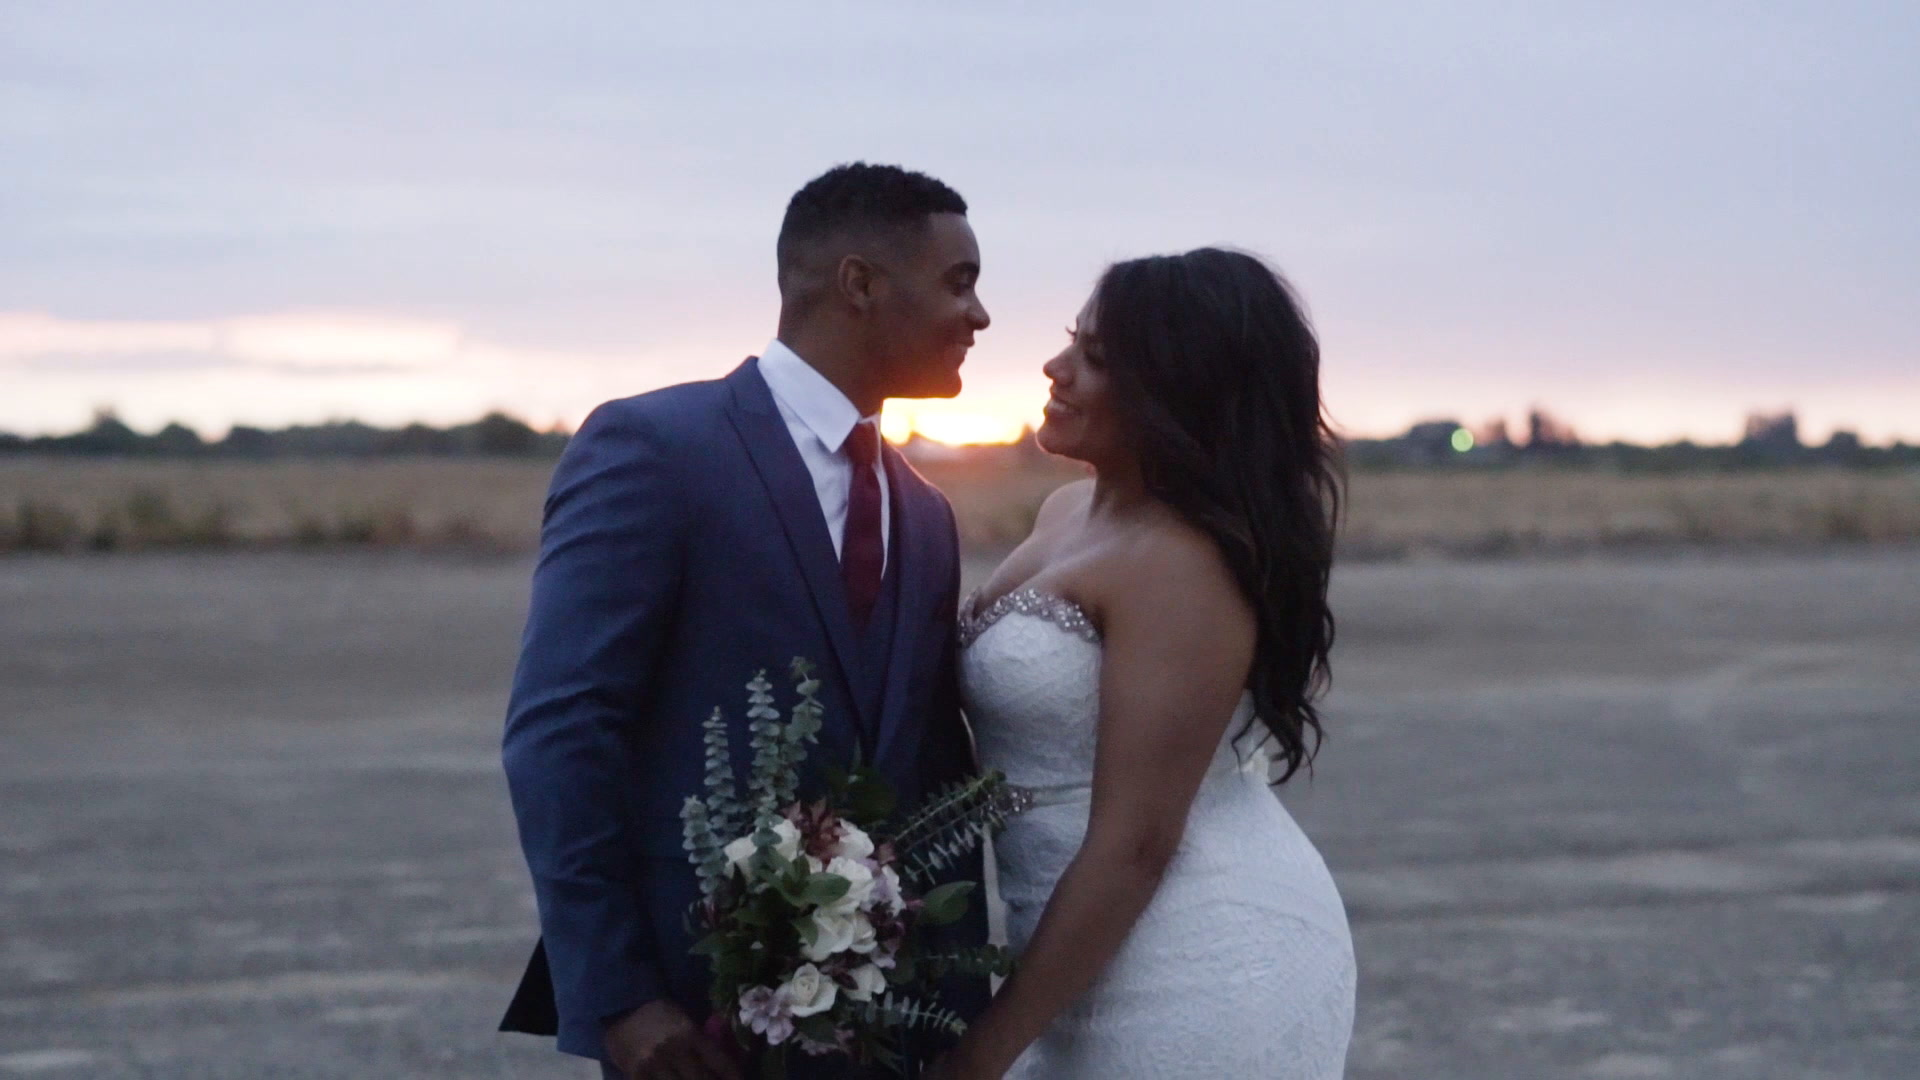 Donald + Viviana | Turlock, California | Pageo Lavender Farm